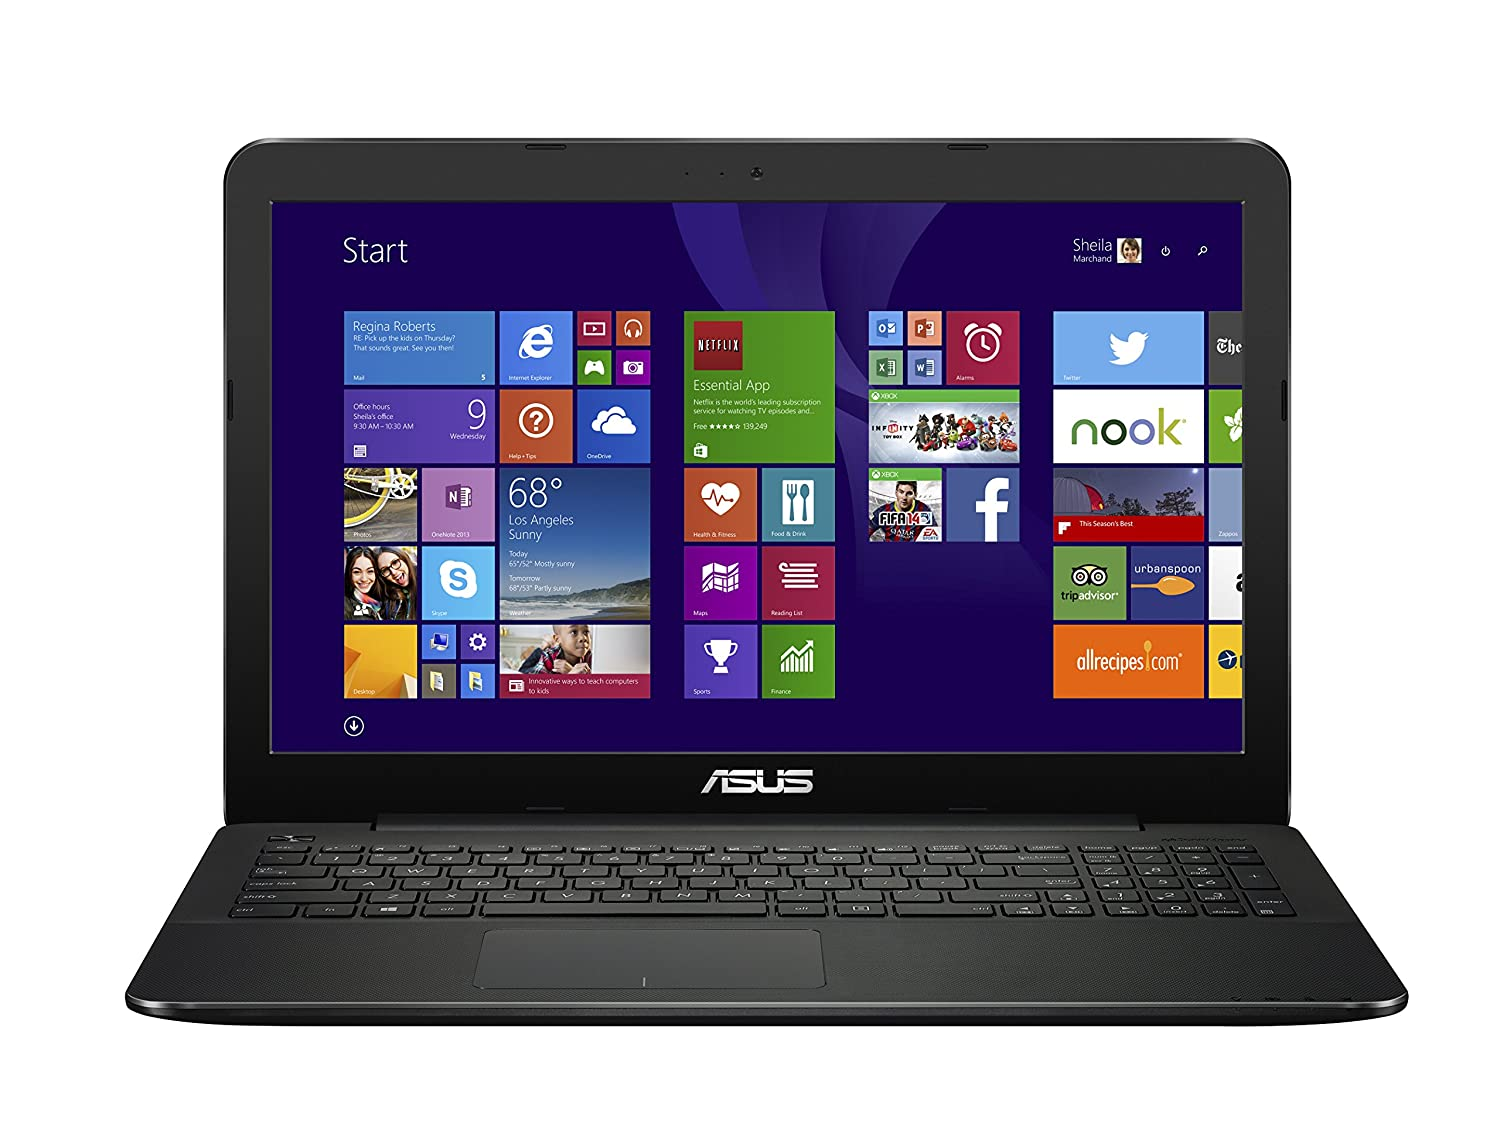 ASUS F554LA 15.6 Inch Laptop (Intel Core i5, 8 GB, 500GB HDD, Black) - Free Upgrade to Windows 10